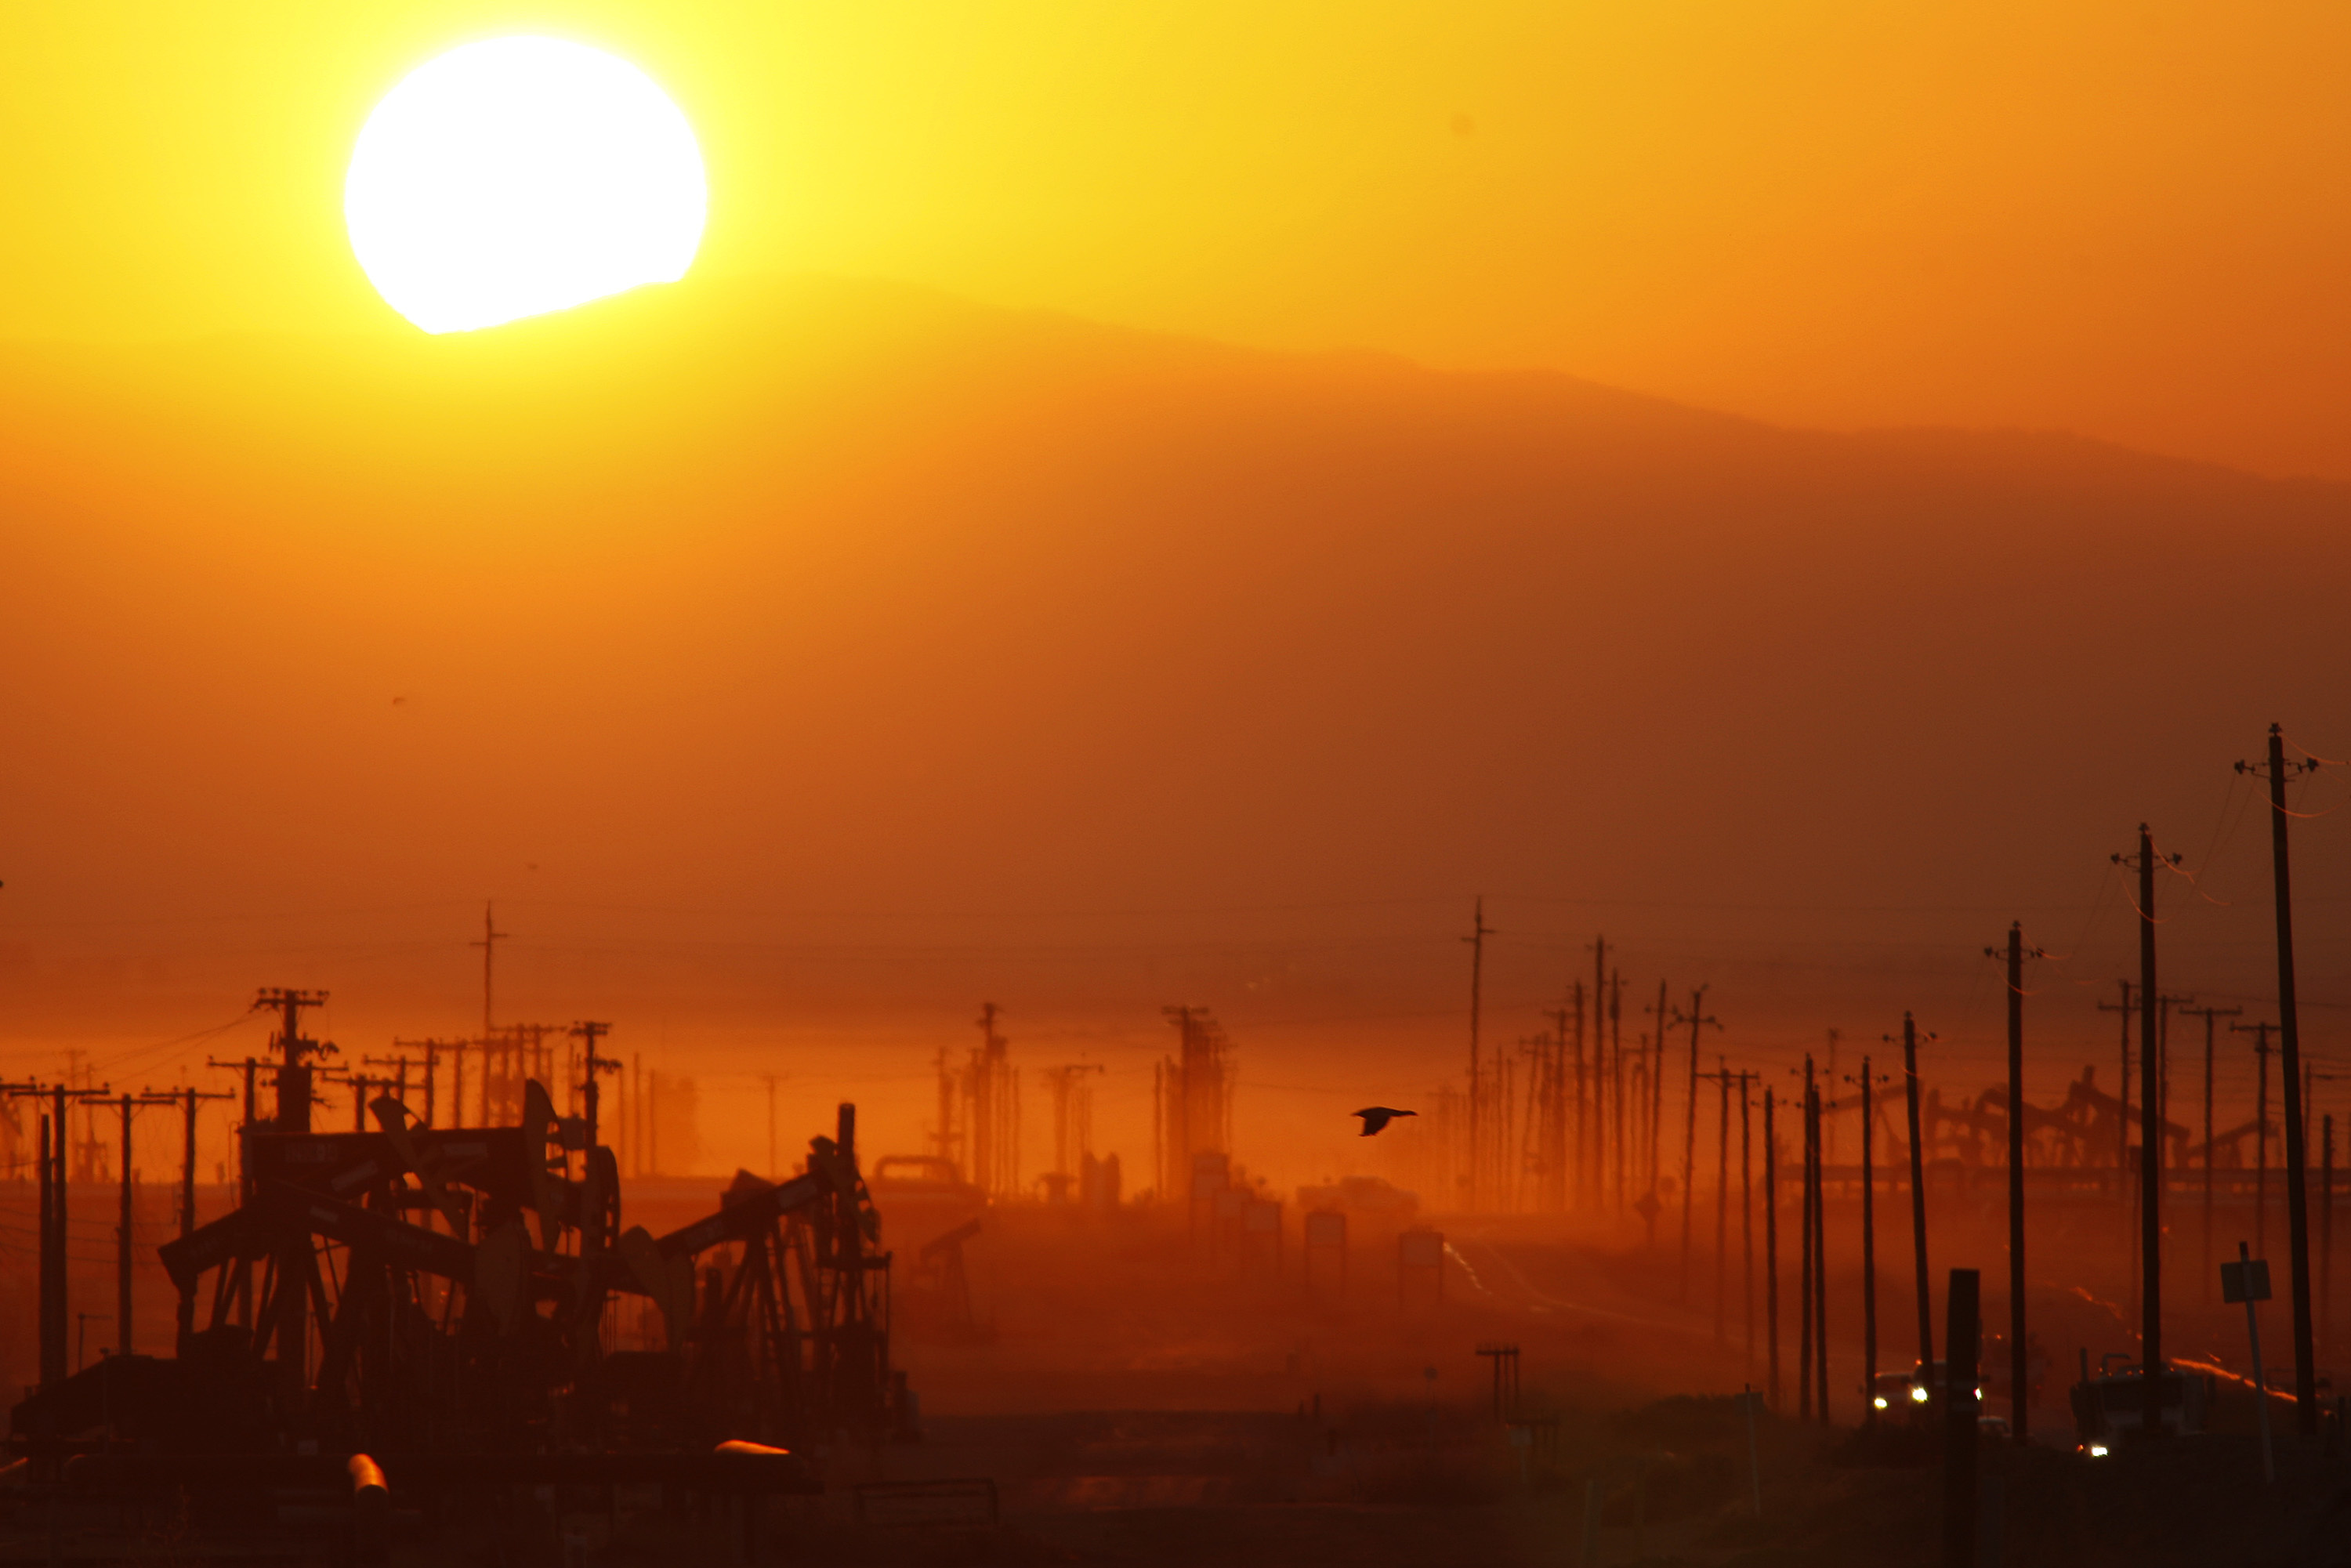 Vastly underestimated : Fossil fuels emit 40% more methane than previously thought, study finds